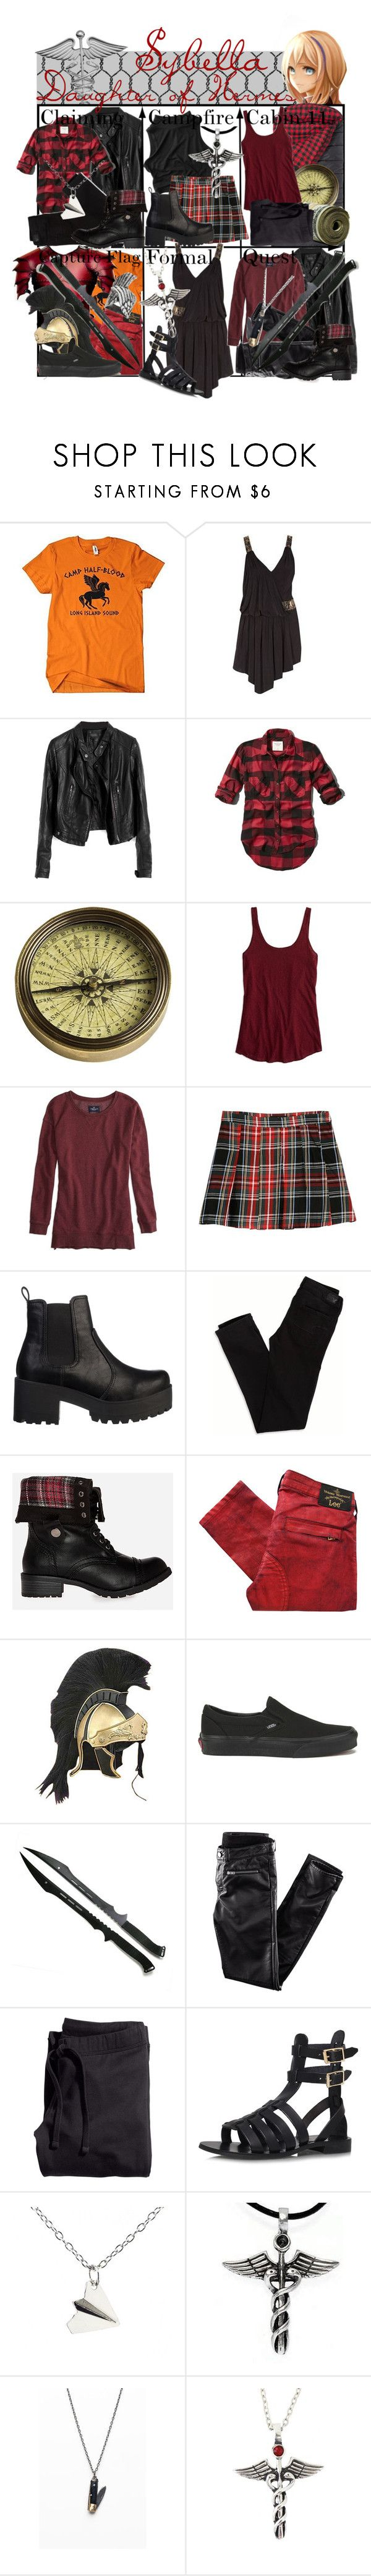 """""""Requested by sybella-fey: Sybella Daughter of Hermes ~ Wardrobe"""" by liesle ❤ liked on Polyvore featuring ASOS, Abercrombie & Fitch, Authentic Models, American Eagle Outfitters, MANGO, Lipstik, DailyLook, Vivienne Westwood Anglomania, Vans and H&M"""